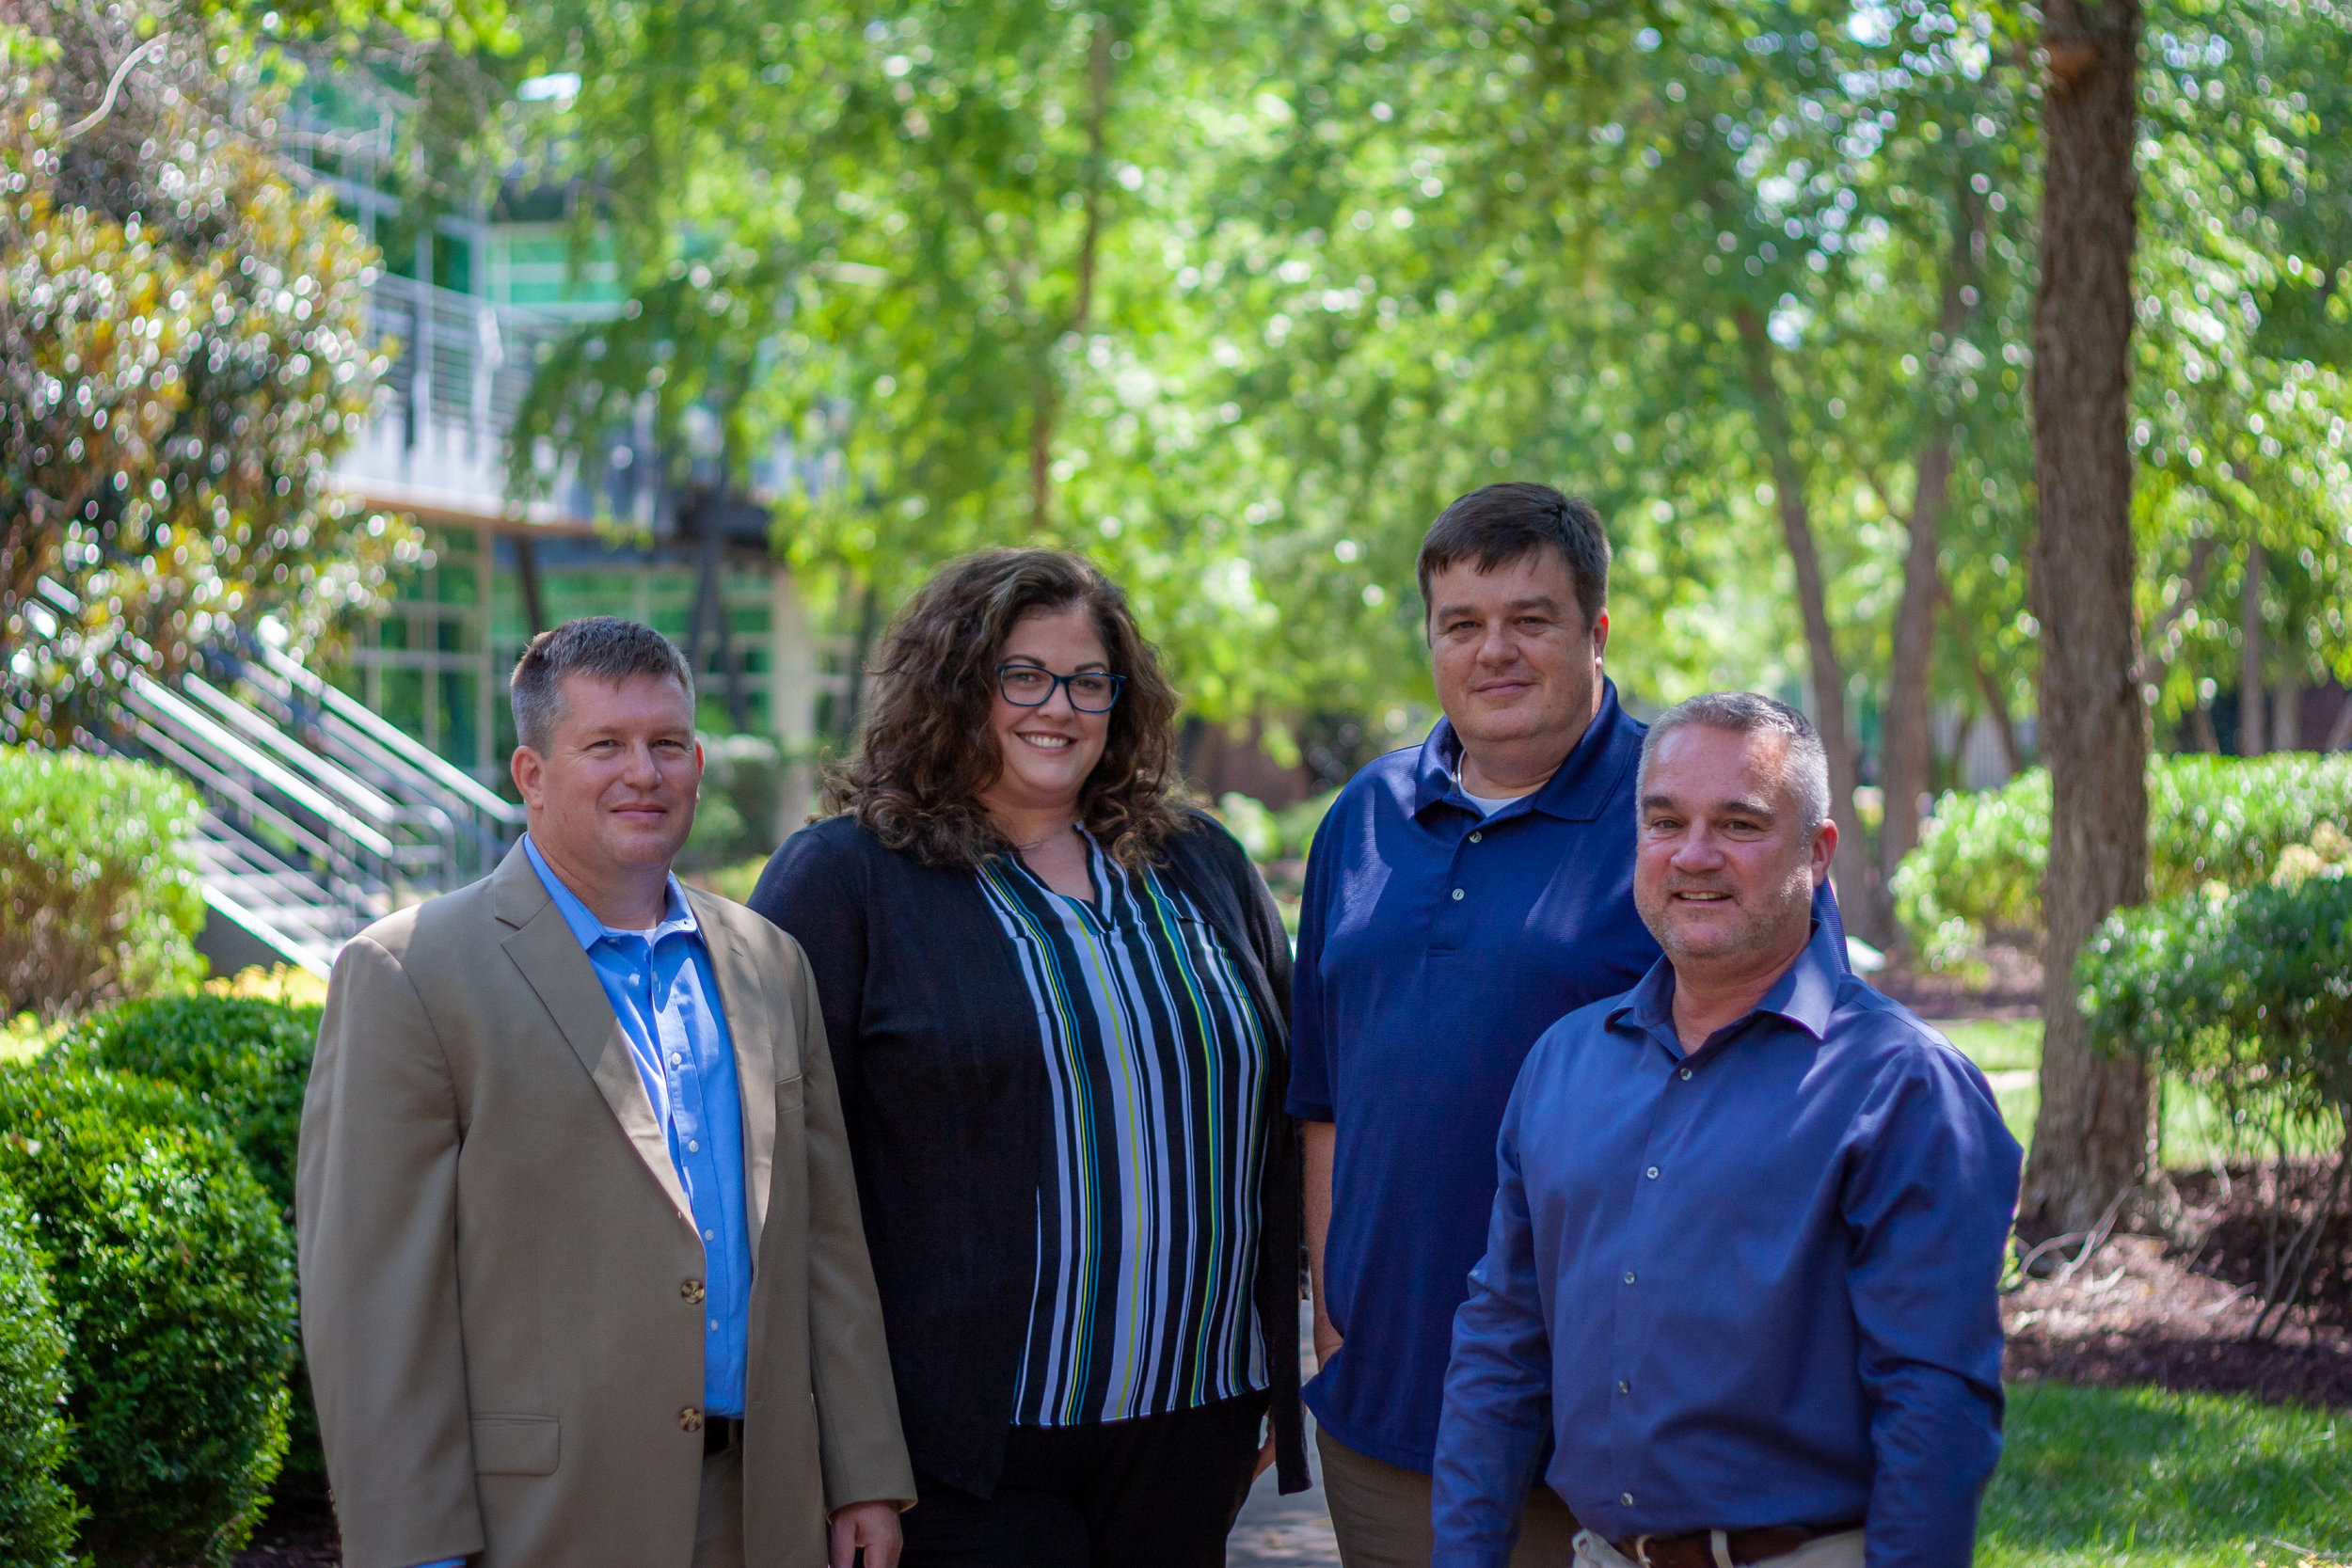 Senior Staff of A2H's New Nashville Office (from left to right): Arran Addington, Stacie Berry, Rick McAllister, AIA, Shane Brewer, AIA.